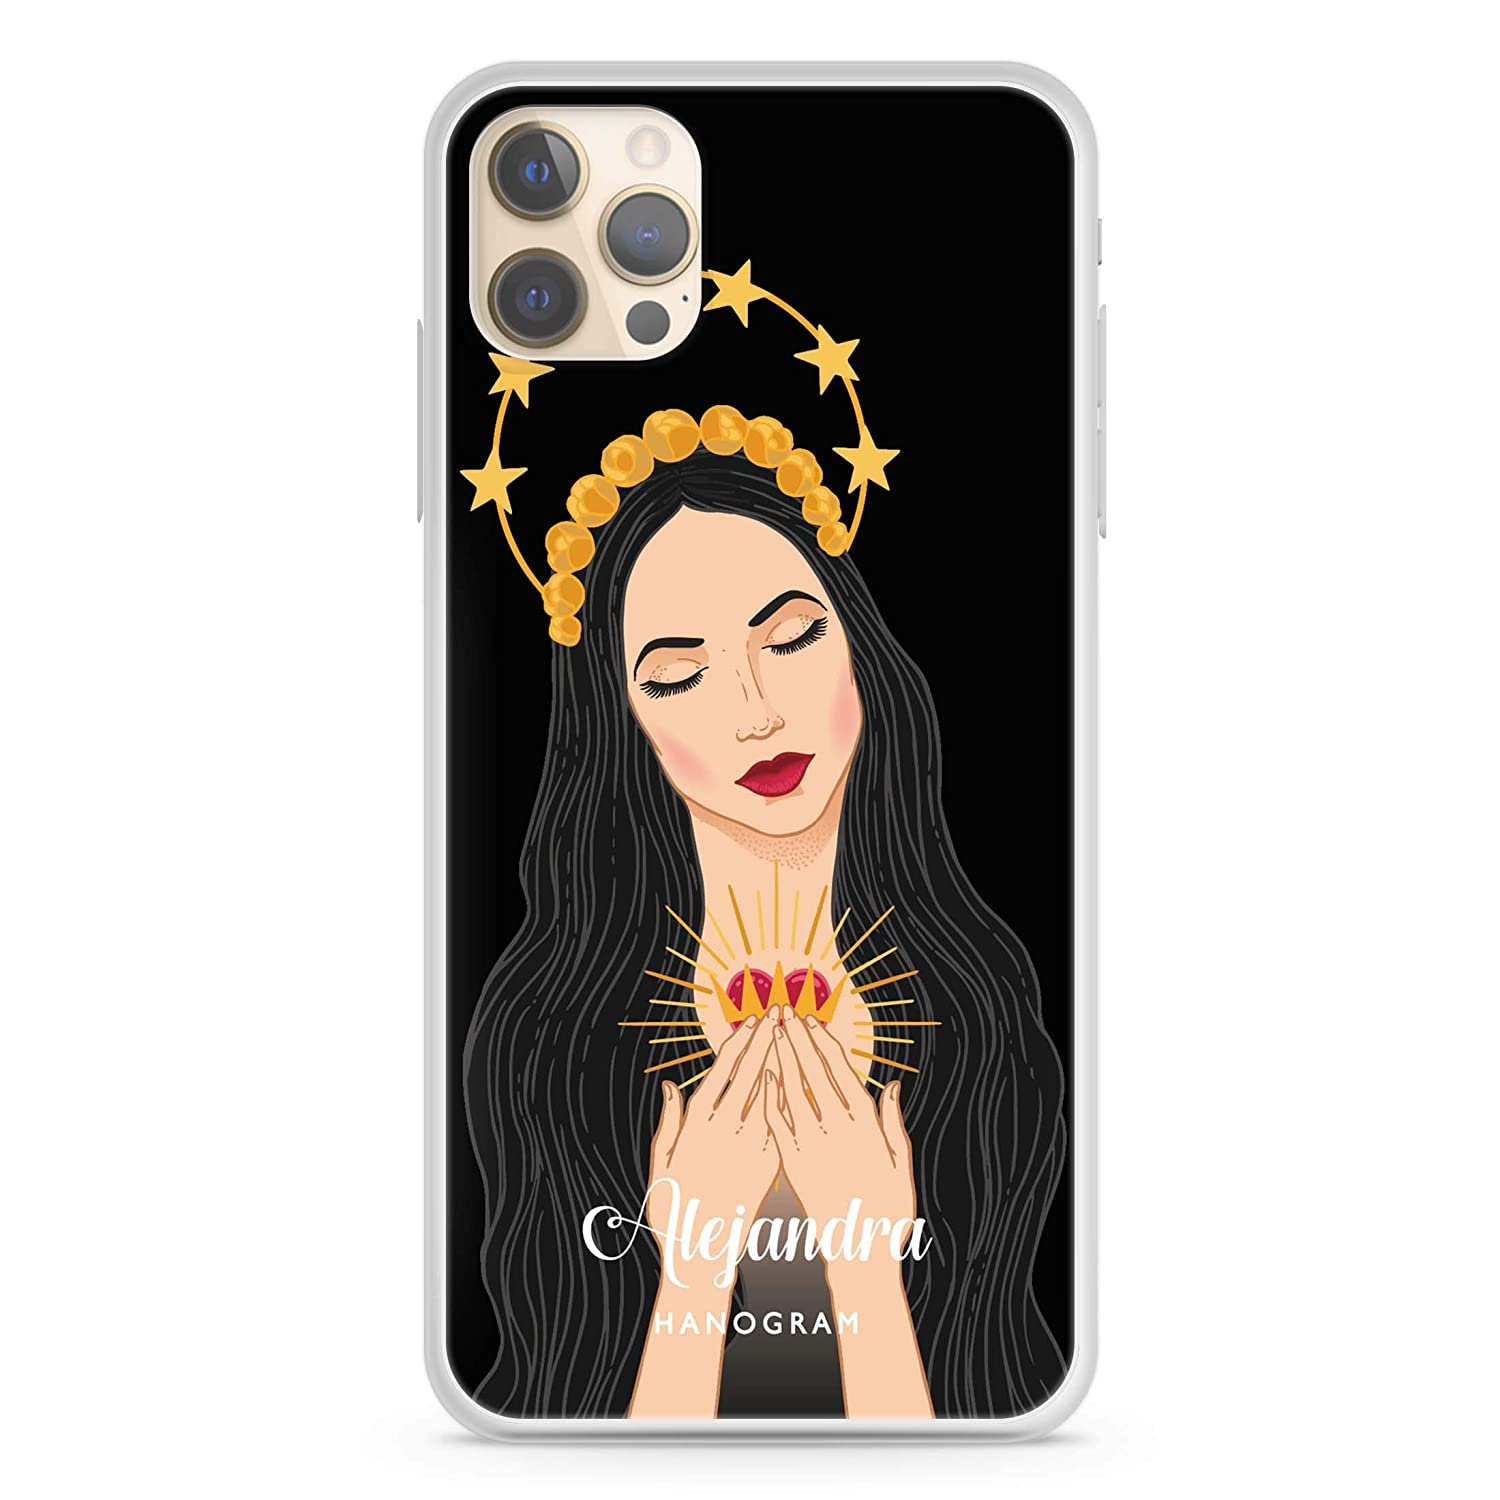 The Virgin Mary iPhone 12 Pro Max 43% OFF Soft iP Clear Case Clearance SALE! Limited time!